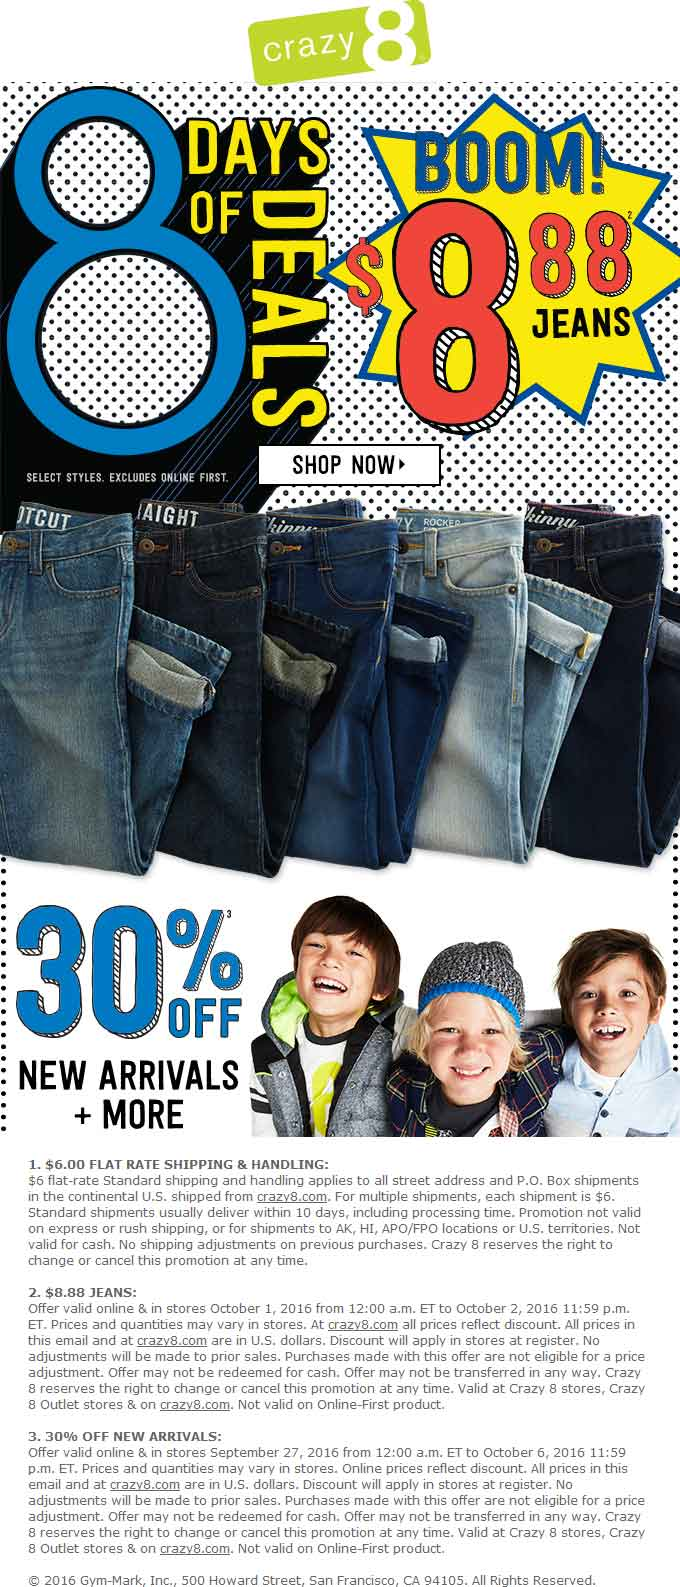 Crazy 8 Coupon May 2017 30% off new arrivals at Crazy 8 kidswear, ditto online